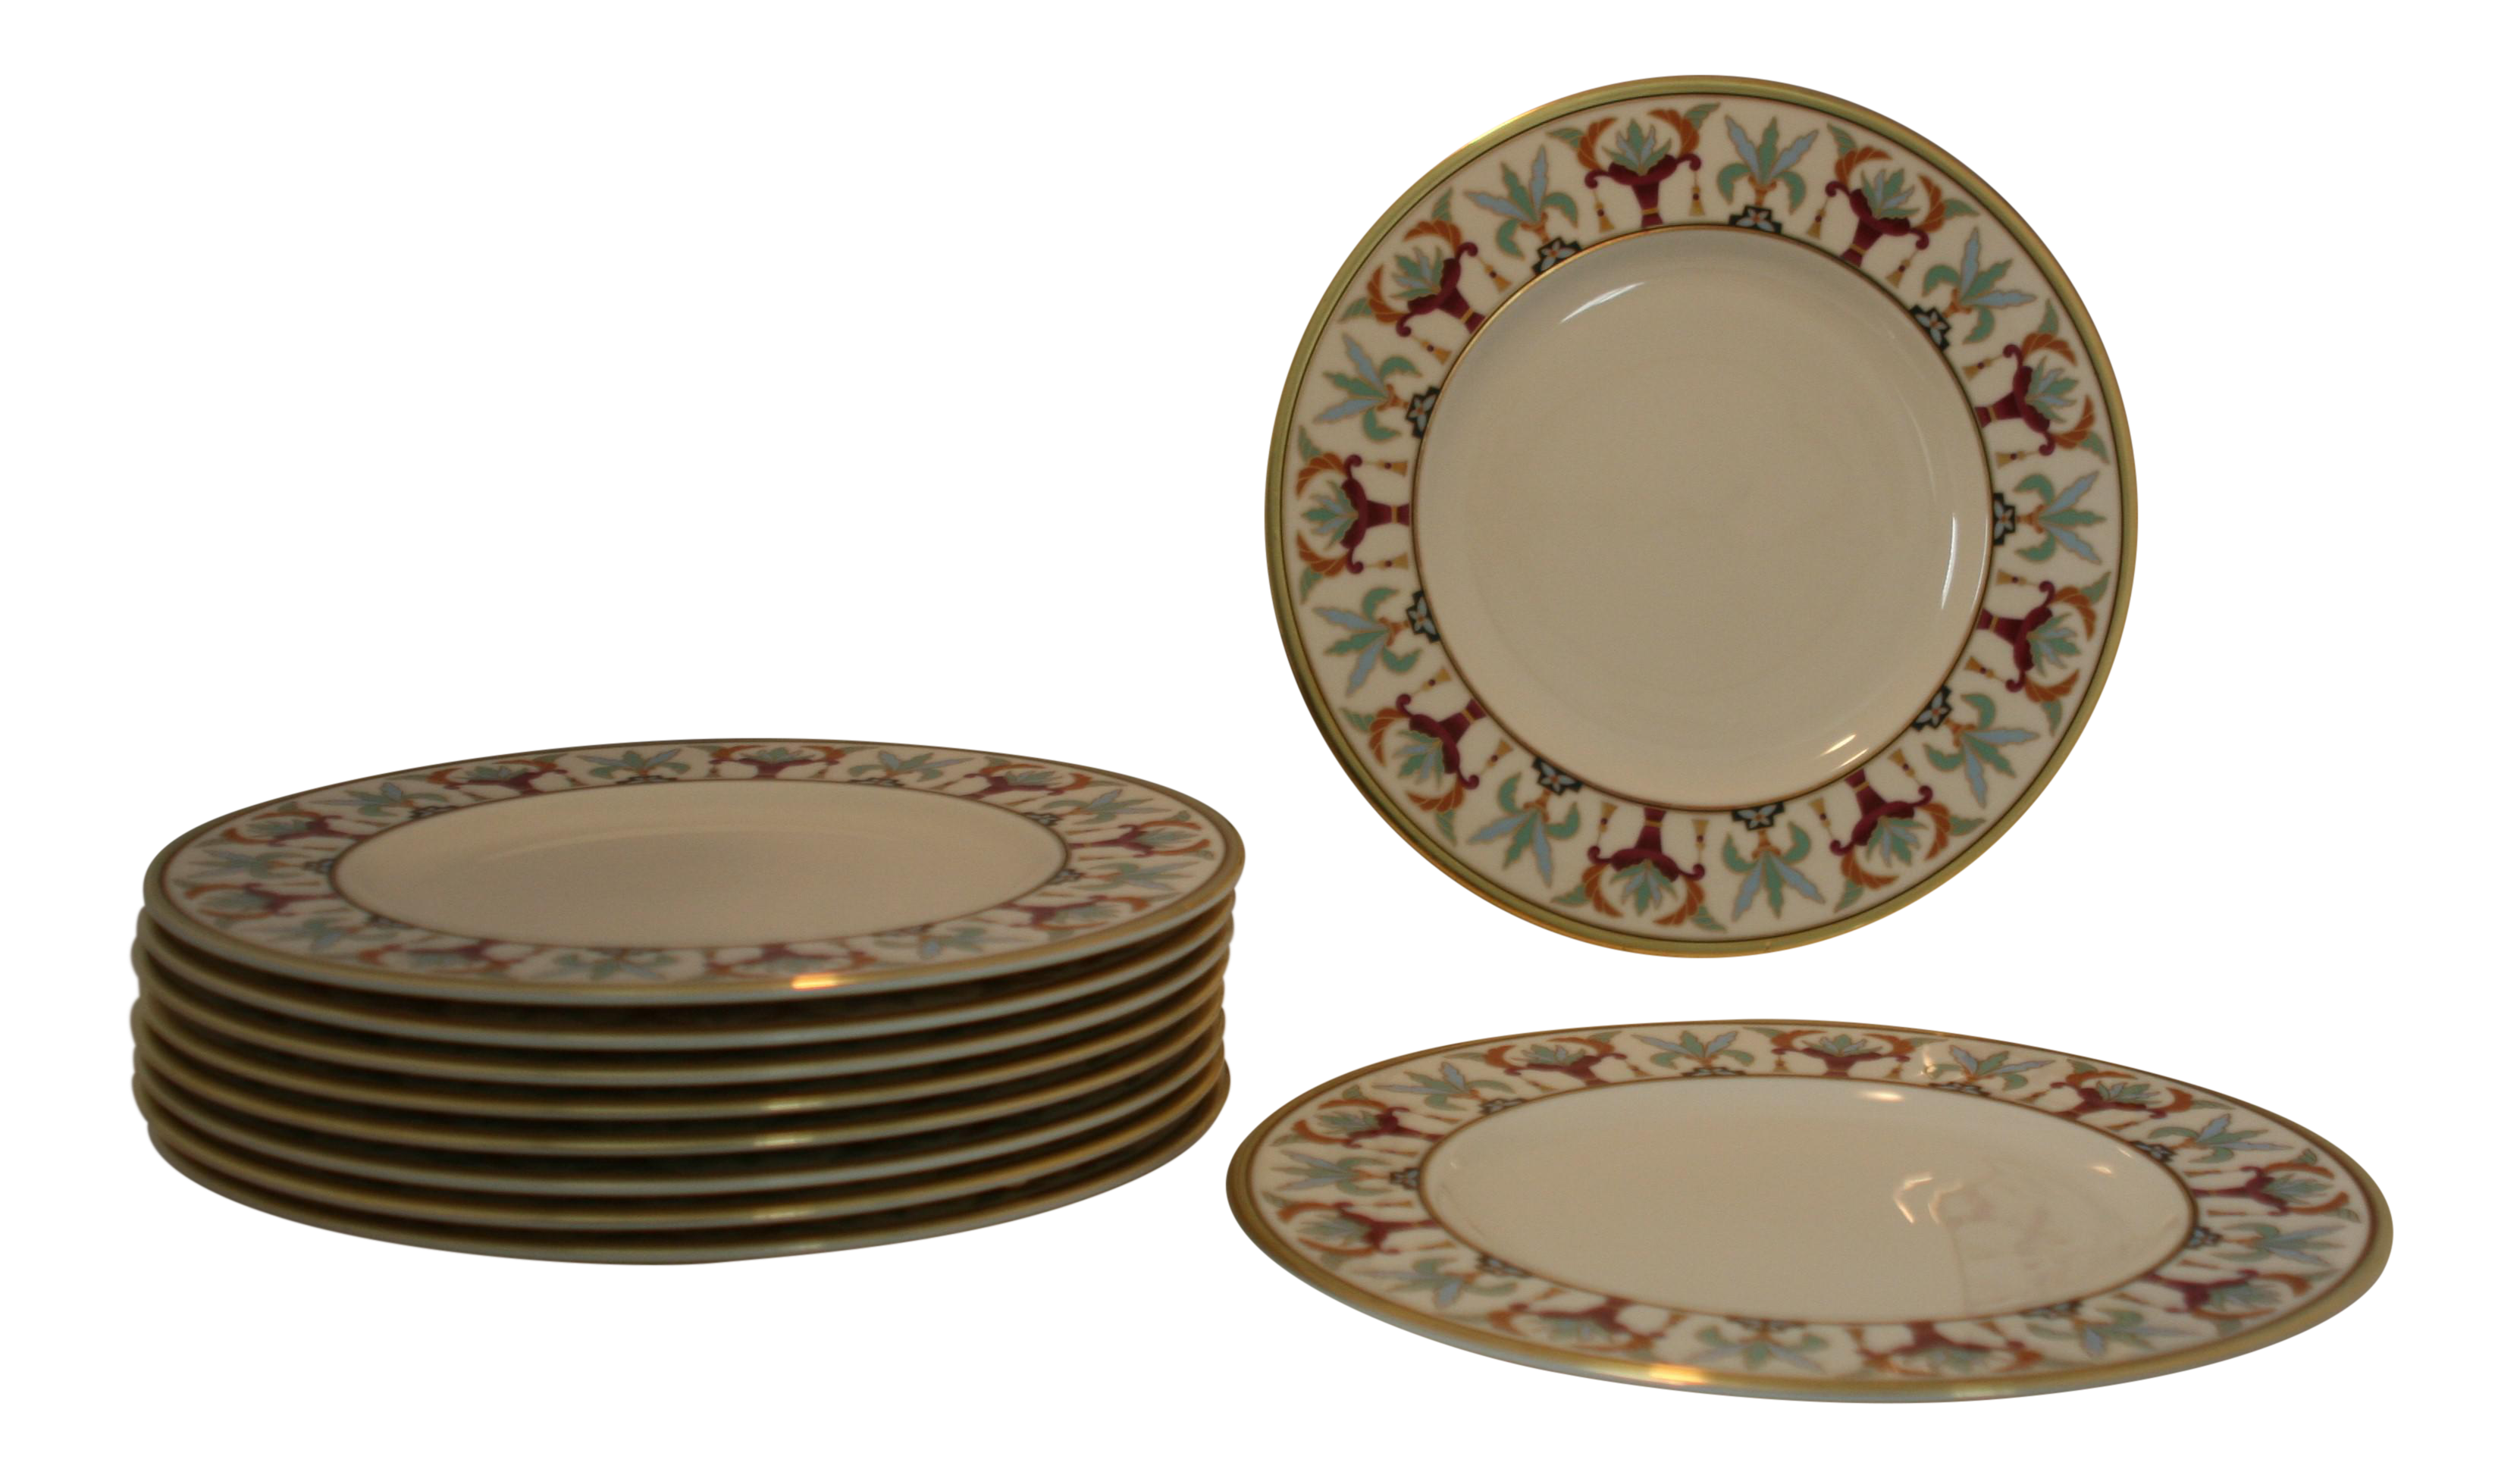 Lenox Bone China Grand Tier Collection Art Nouveau Tosca Pattern Plates - Set of 10  sc 1 st  Chairish & Lenox Bone China Grand Tier Collection Art Nouveau Tosca Pattern ...